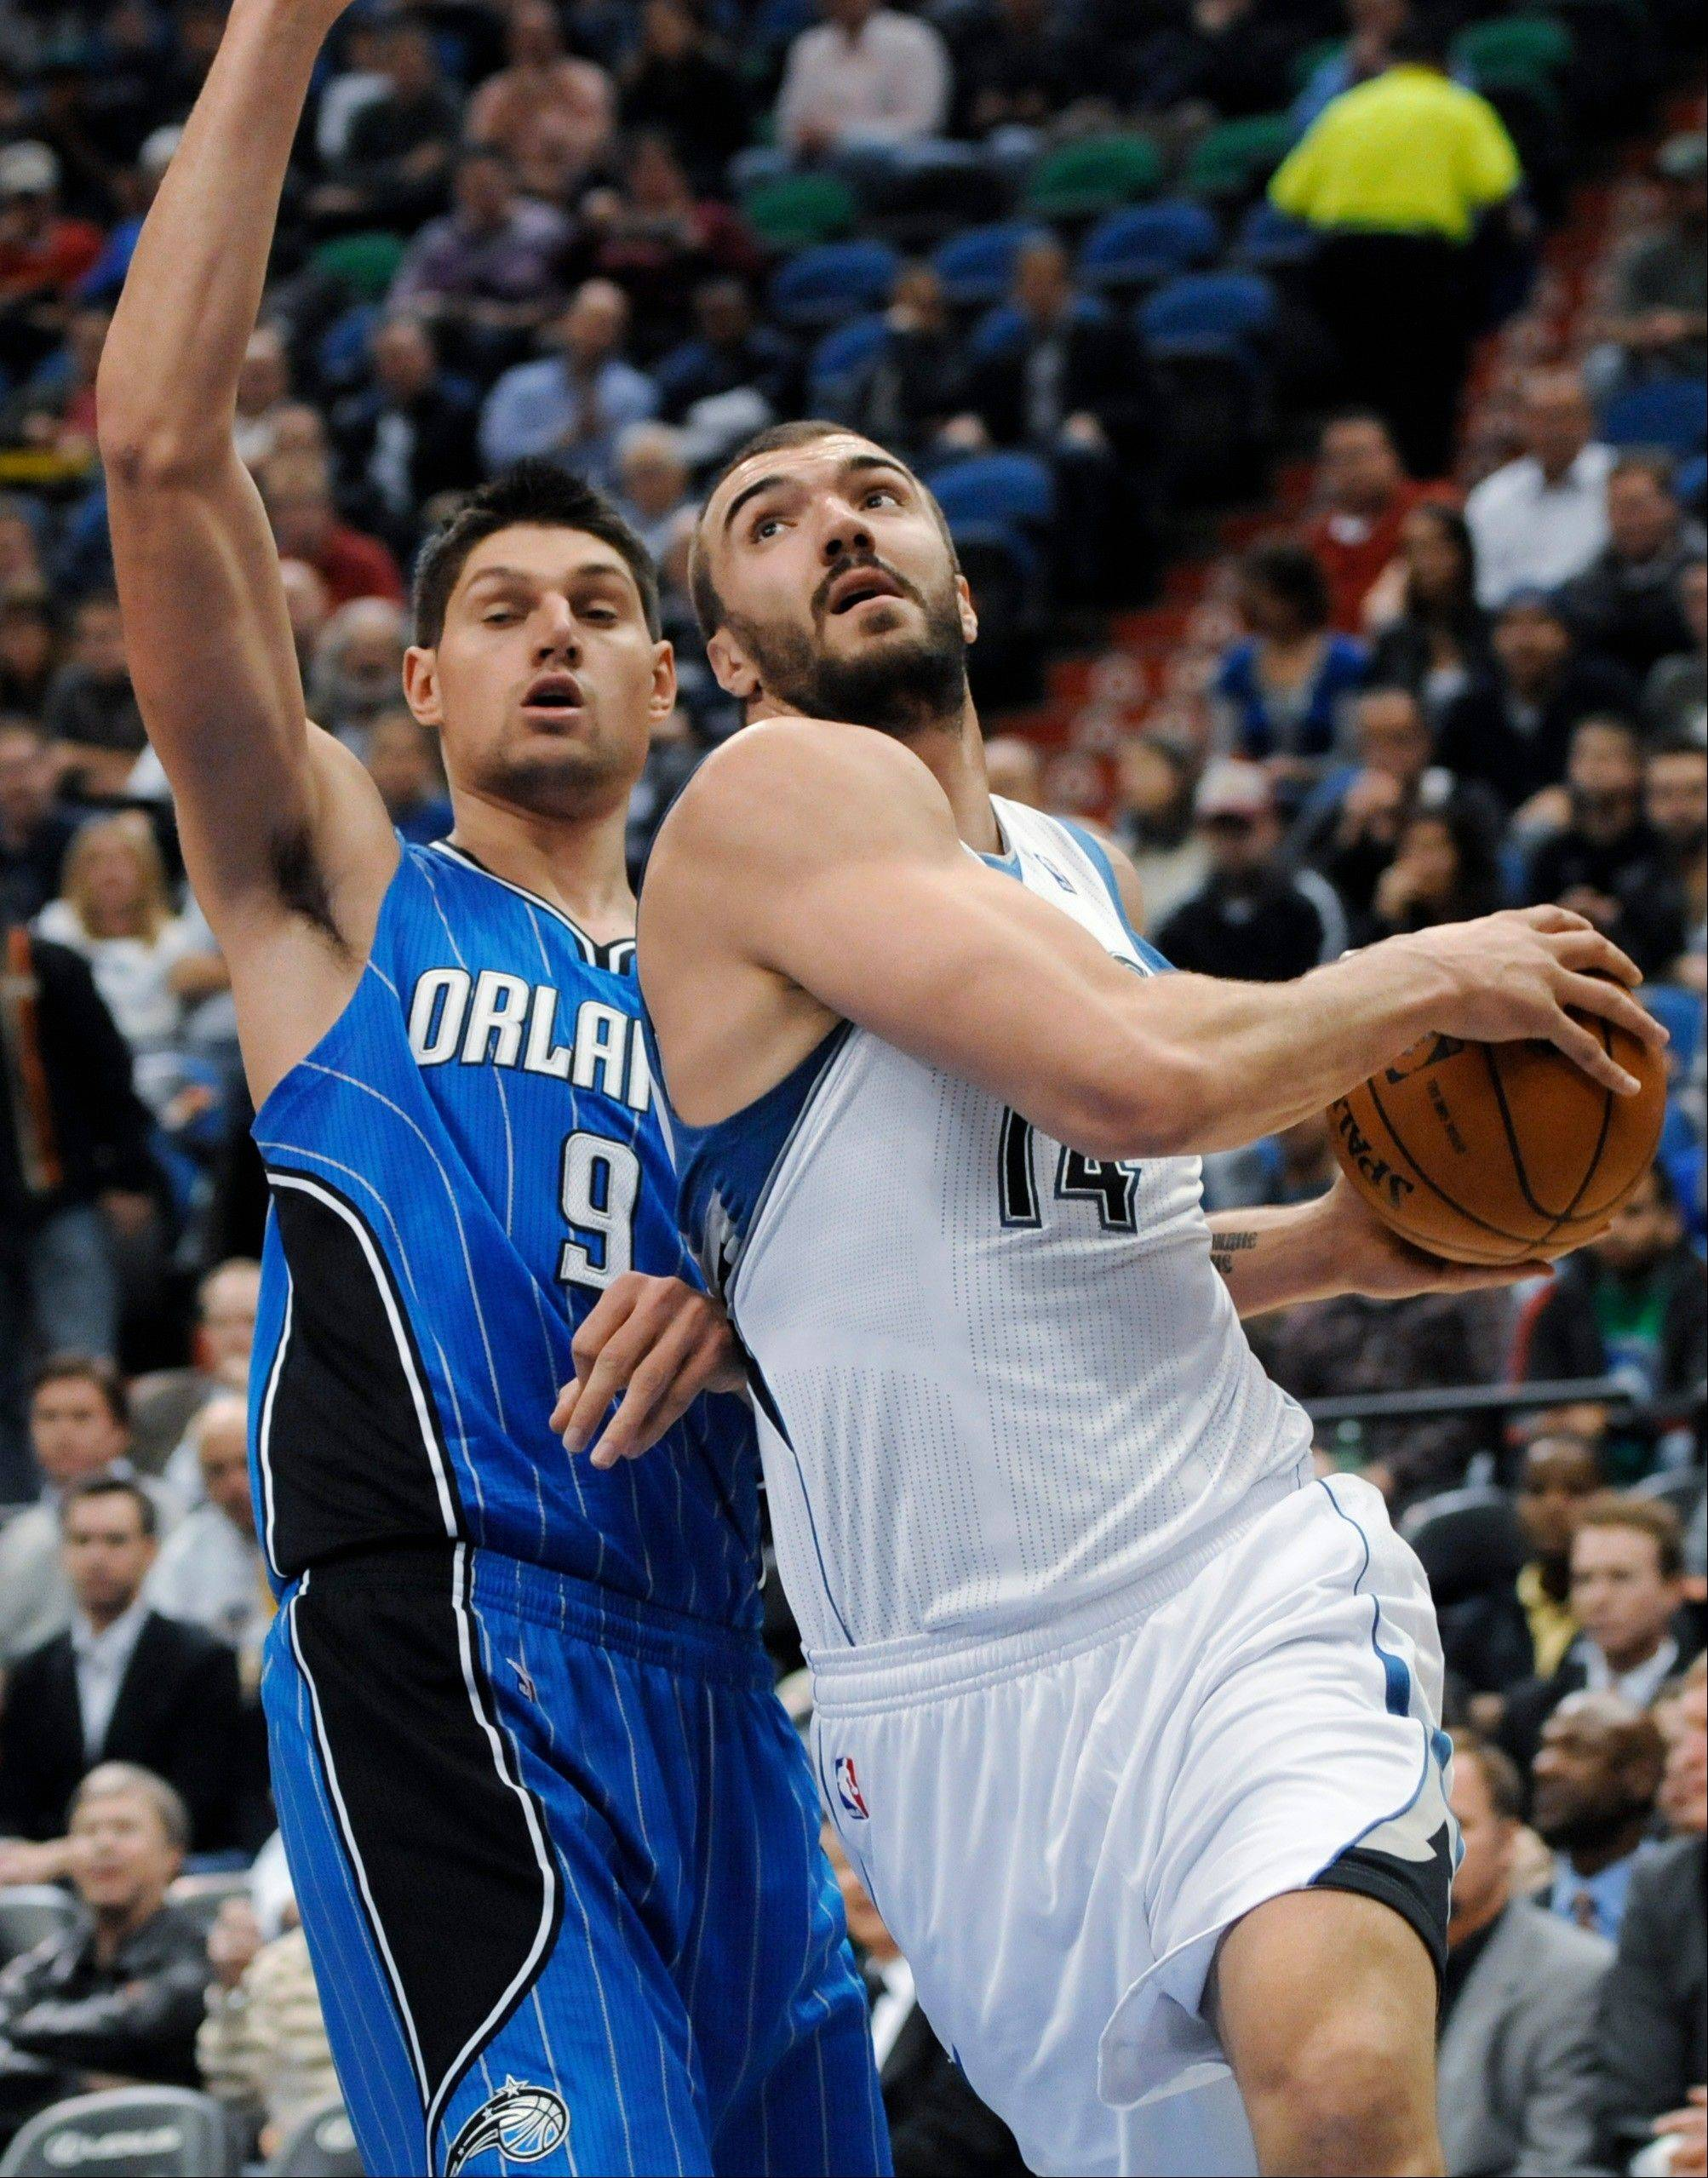 The Minnesota Timberwolves' Nikola Pekovic, right, eyes the basket as the Orlando Magic's Nikola Vucevic defends Wednesday during the first half in Minneapolis.